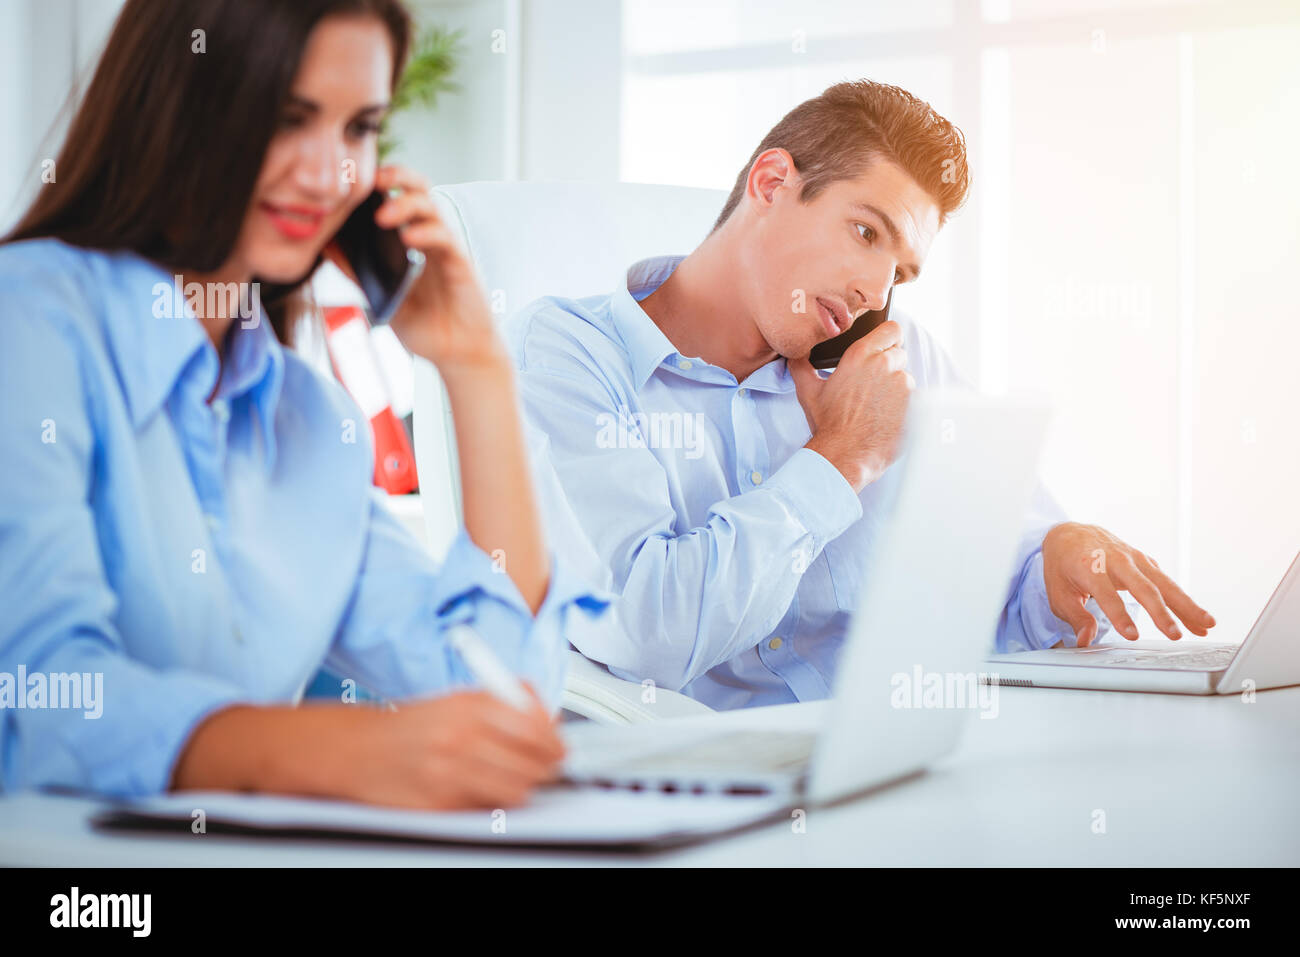 Two businesspeople sitting at the office table. Woman is writing and man using smartphone and looking at laptop. - Stock Image